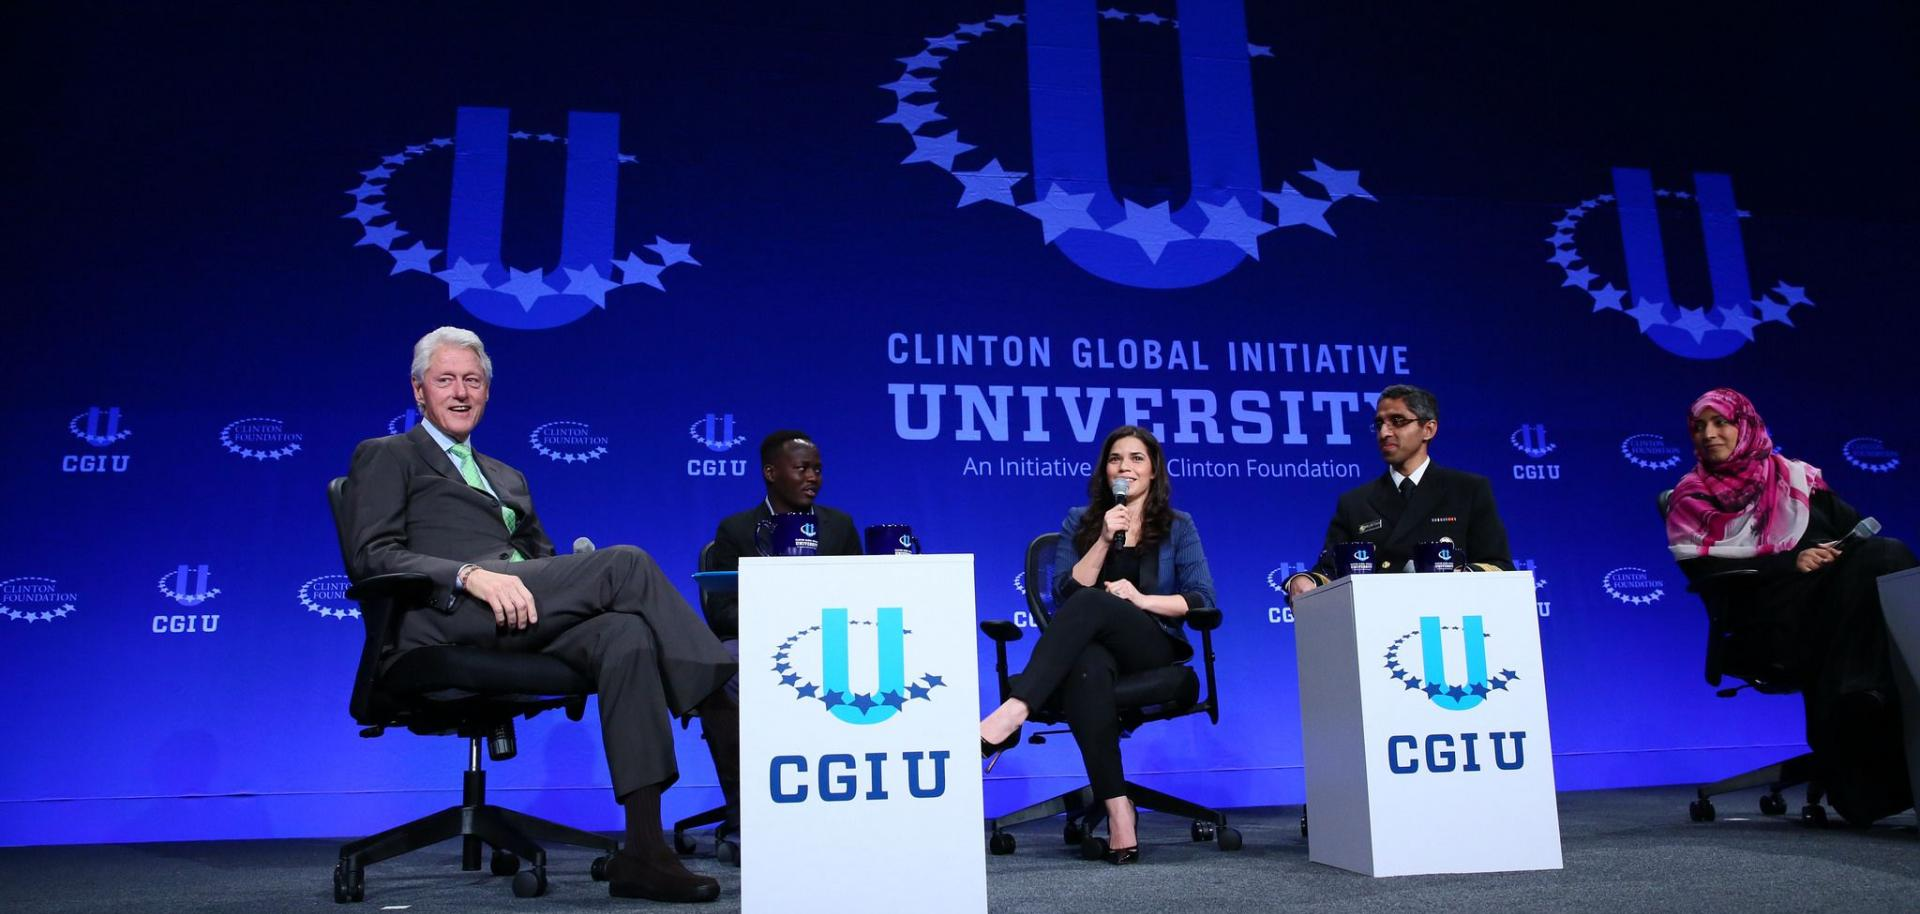 Clinton Global Initiative University 2017 for High-impact Student innovators & Entrepreneurs- Boston,USA (Funding Available)